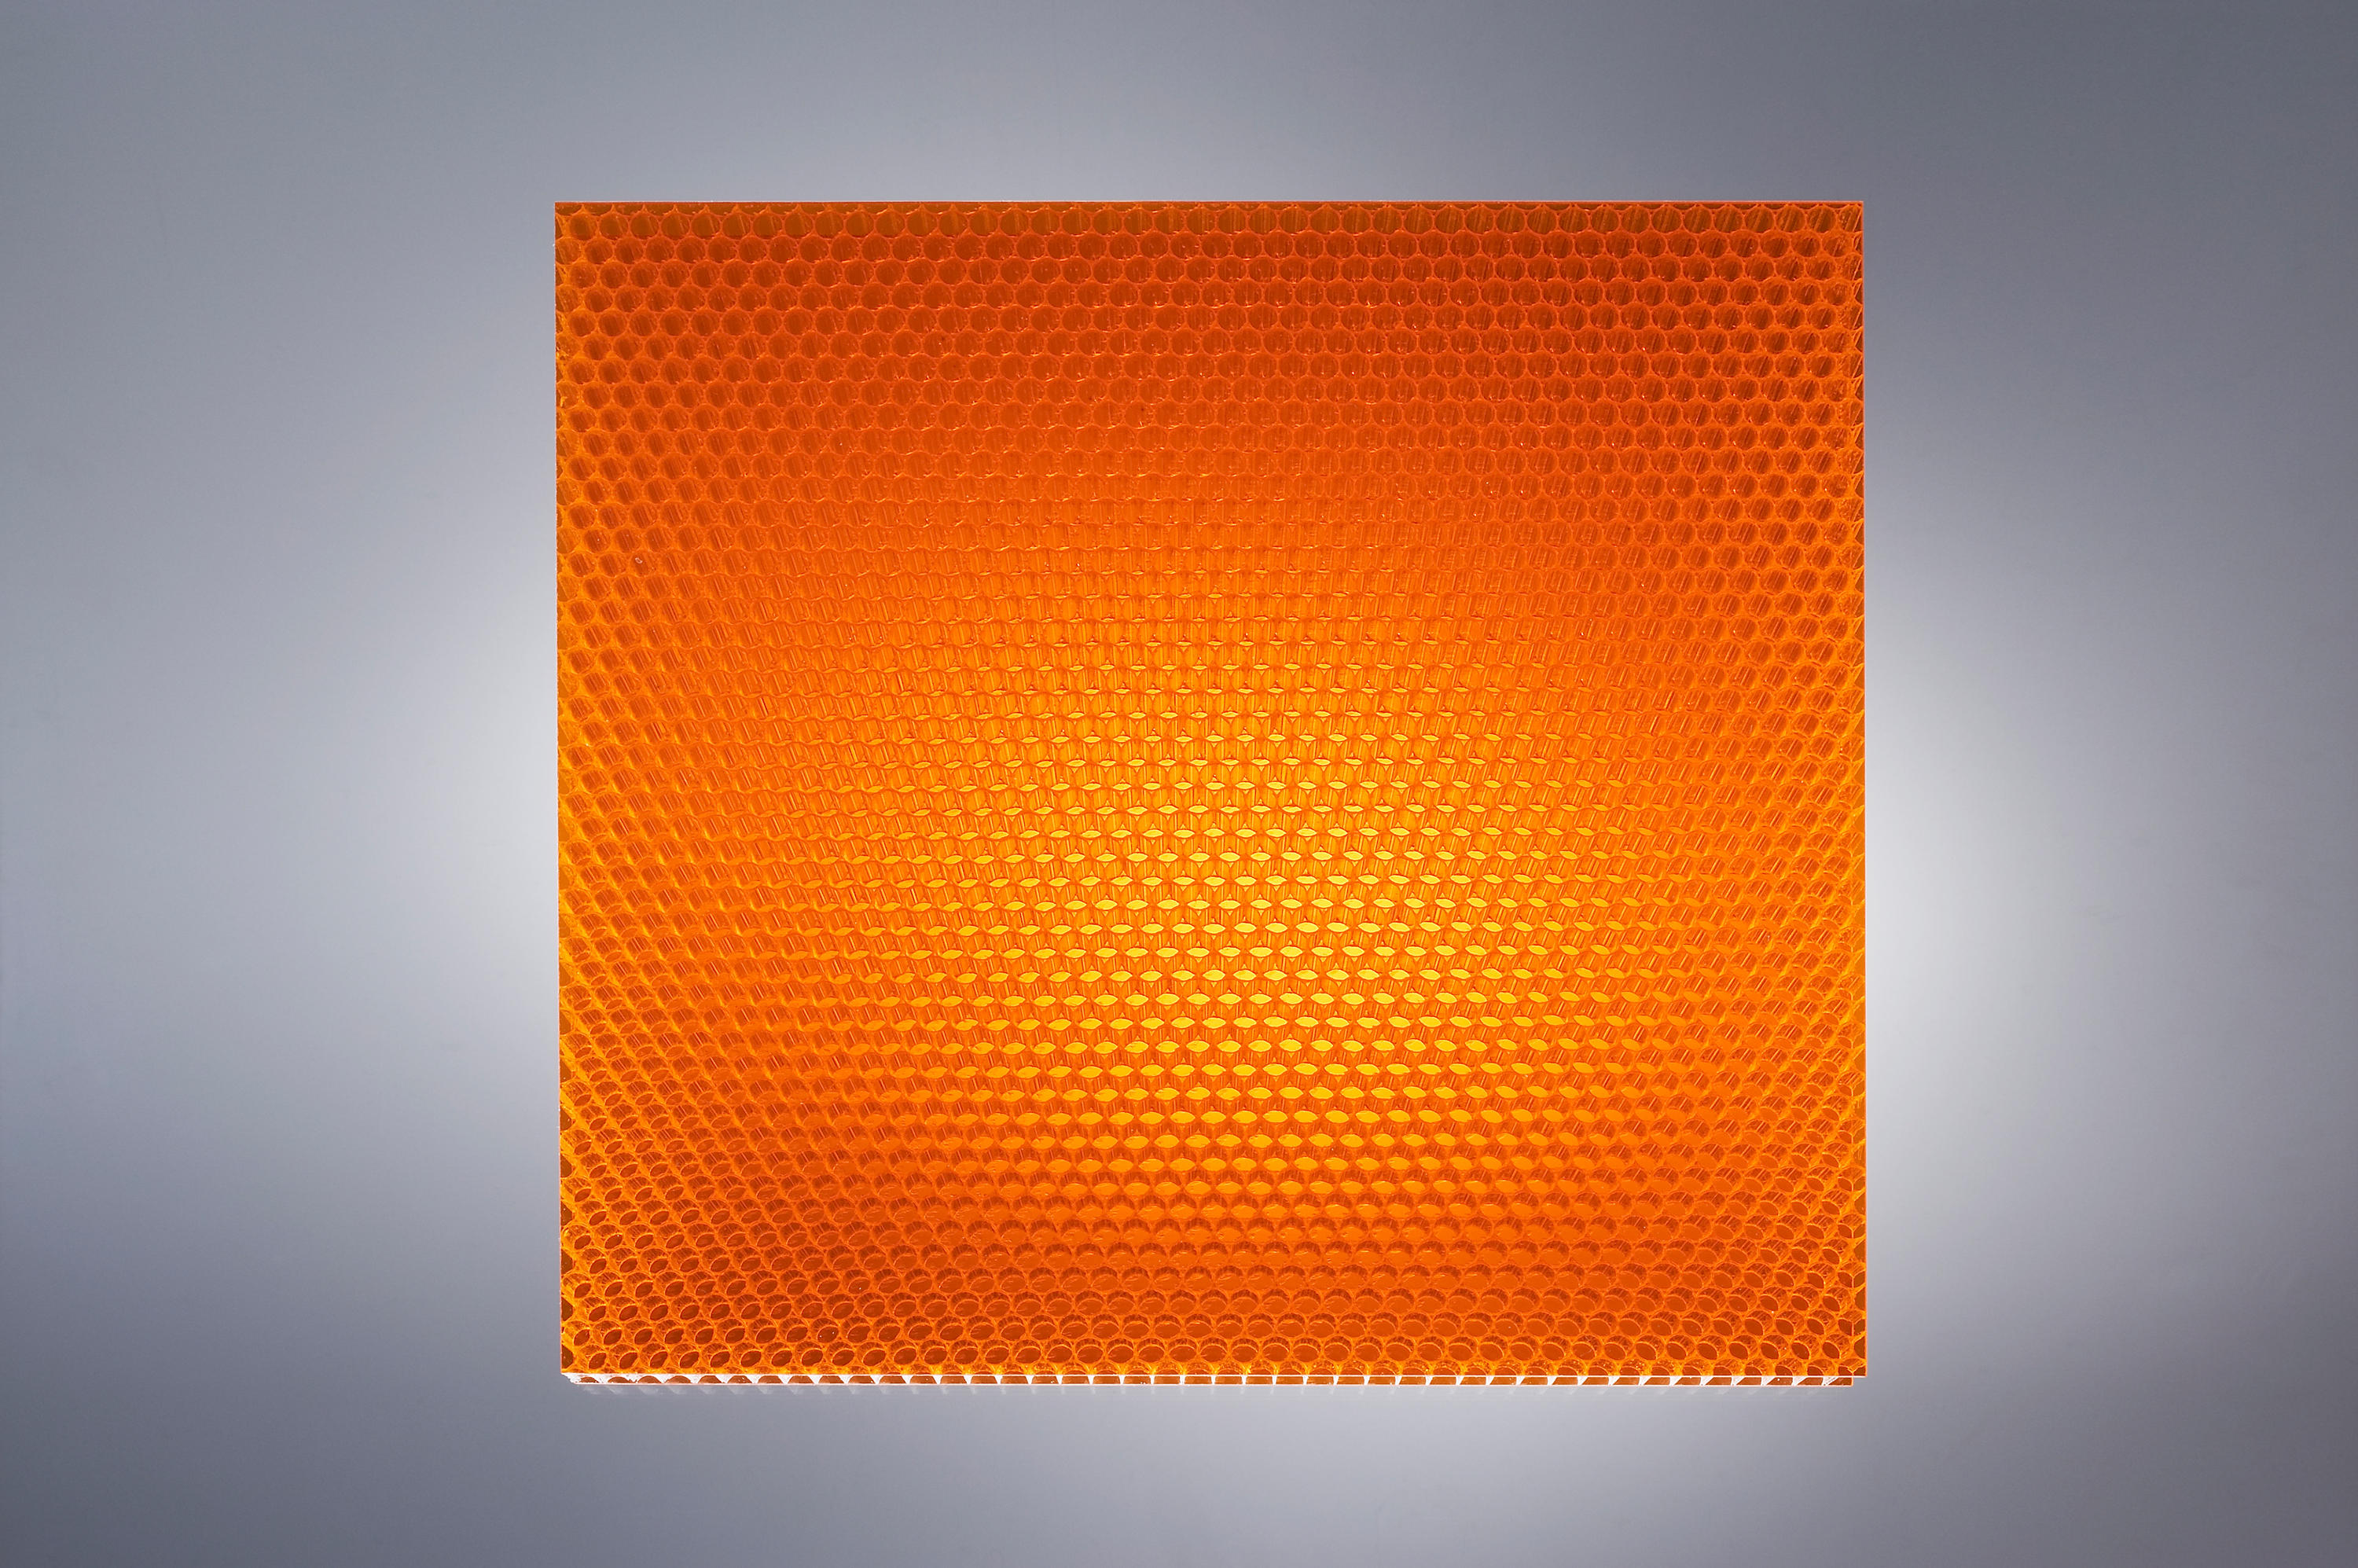 Air board uv pc color orange synthetic panels from